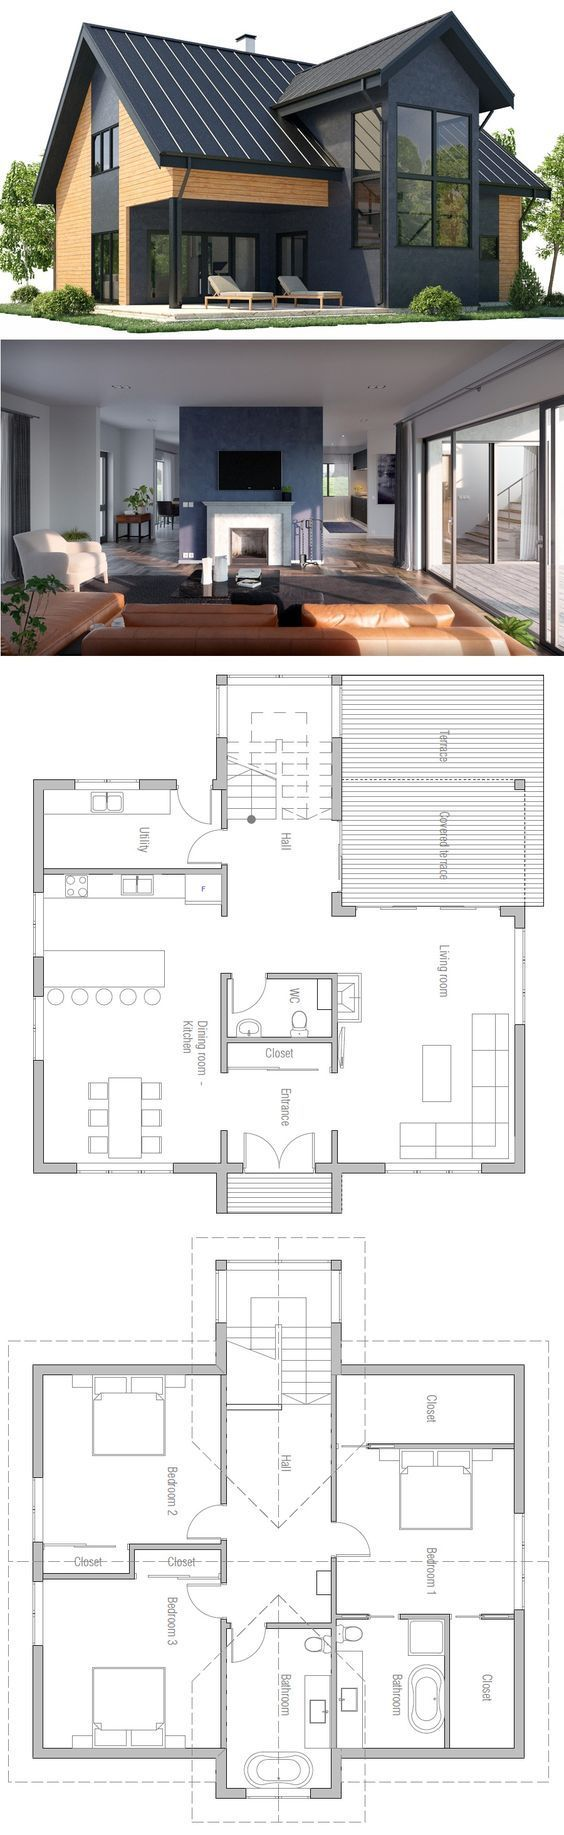 LOVE this plan except maybe just have two bedrooms on second level with their own baths, and add a third level with the same config. Also, basement rec room and storage would be nice.